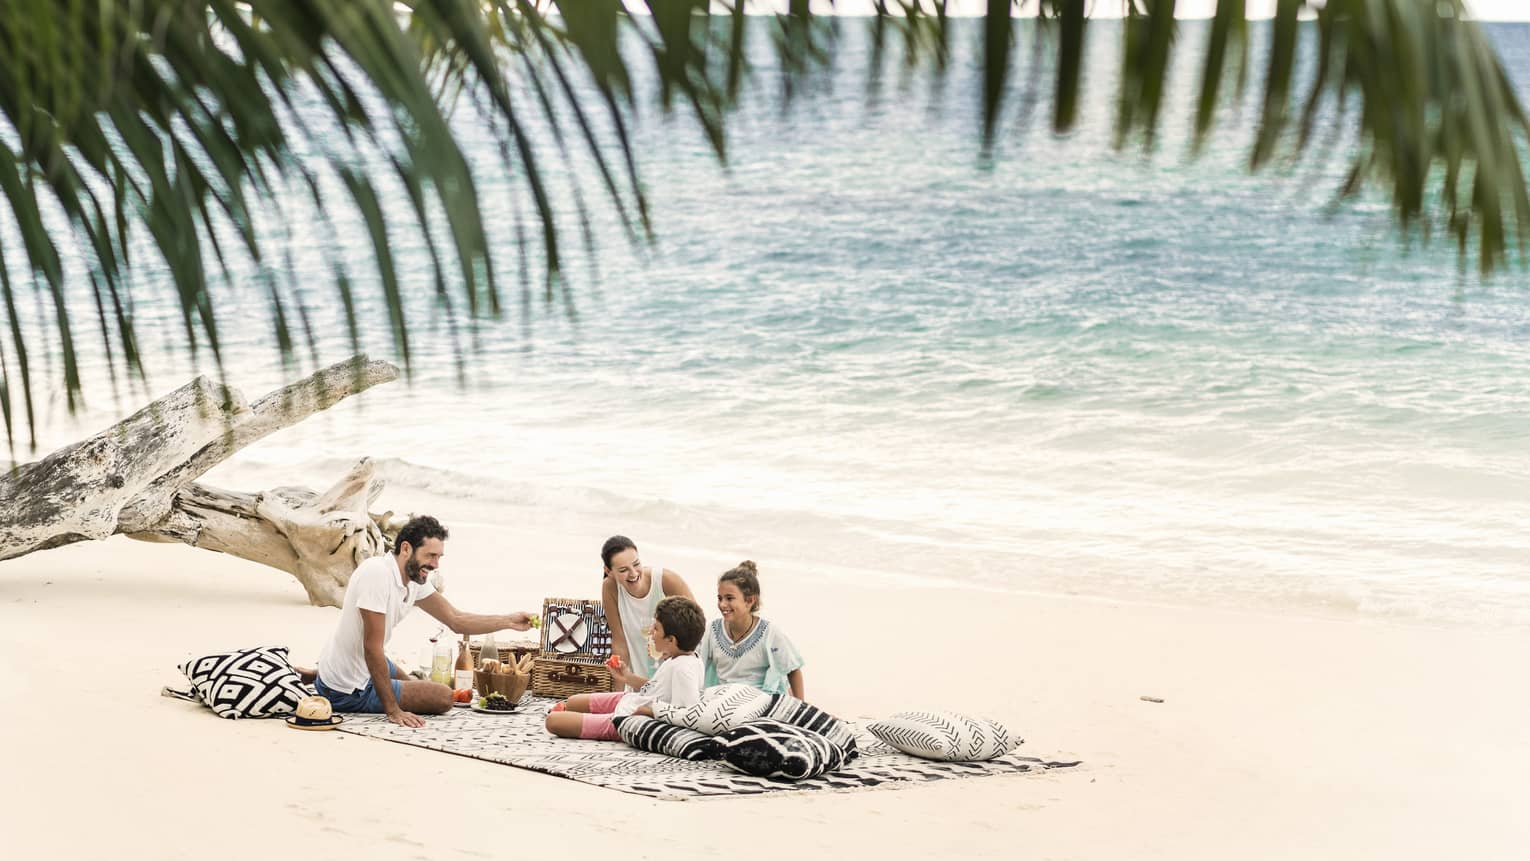 A man, woman and two children picnic on the beach just a couple feet away from the ocean.